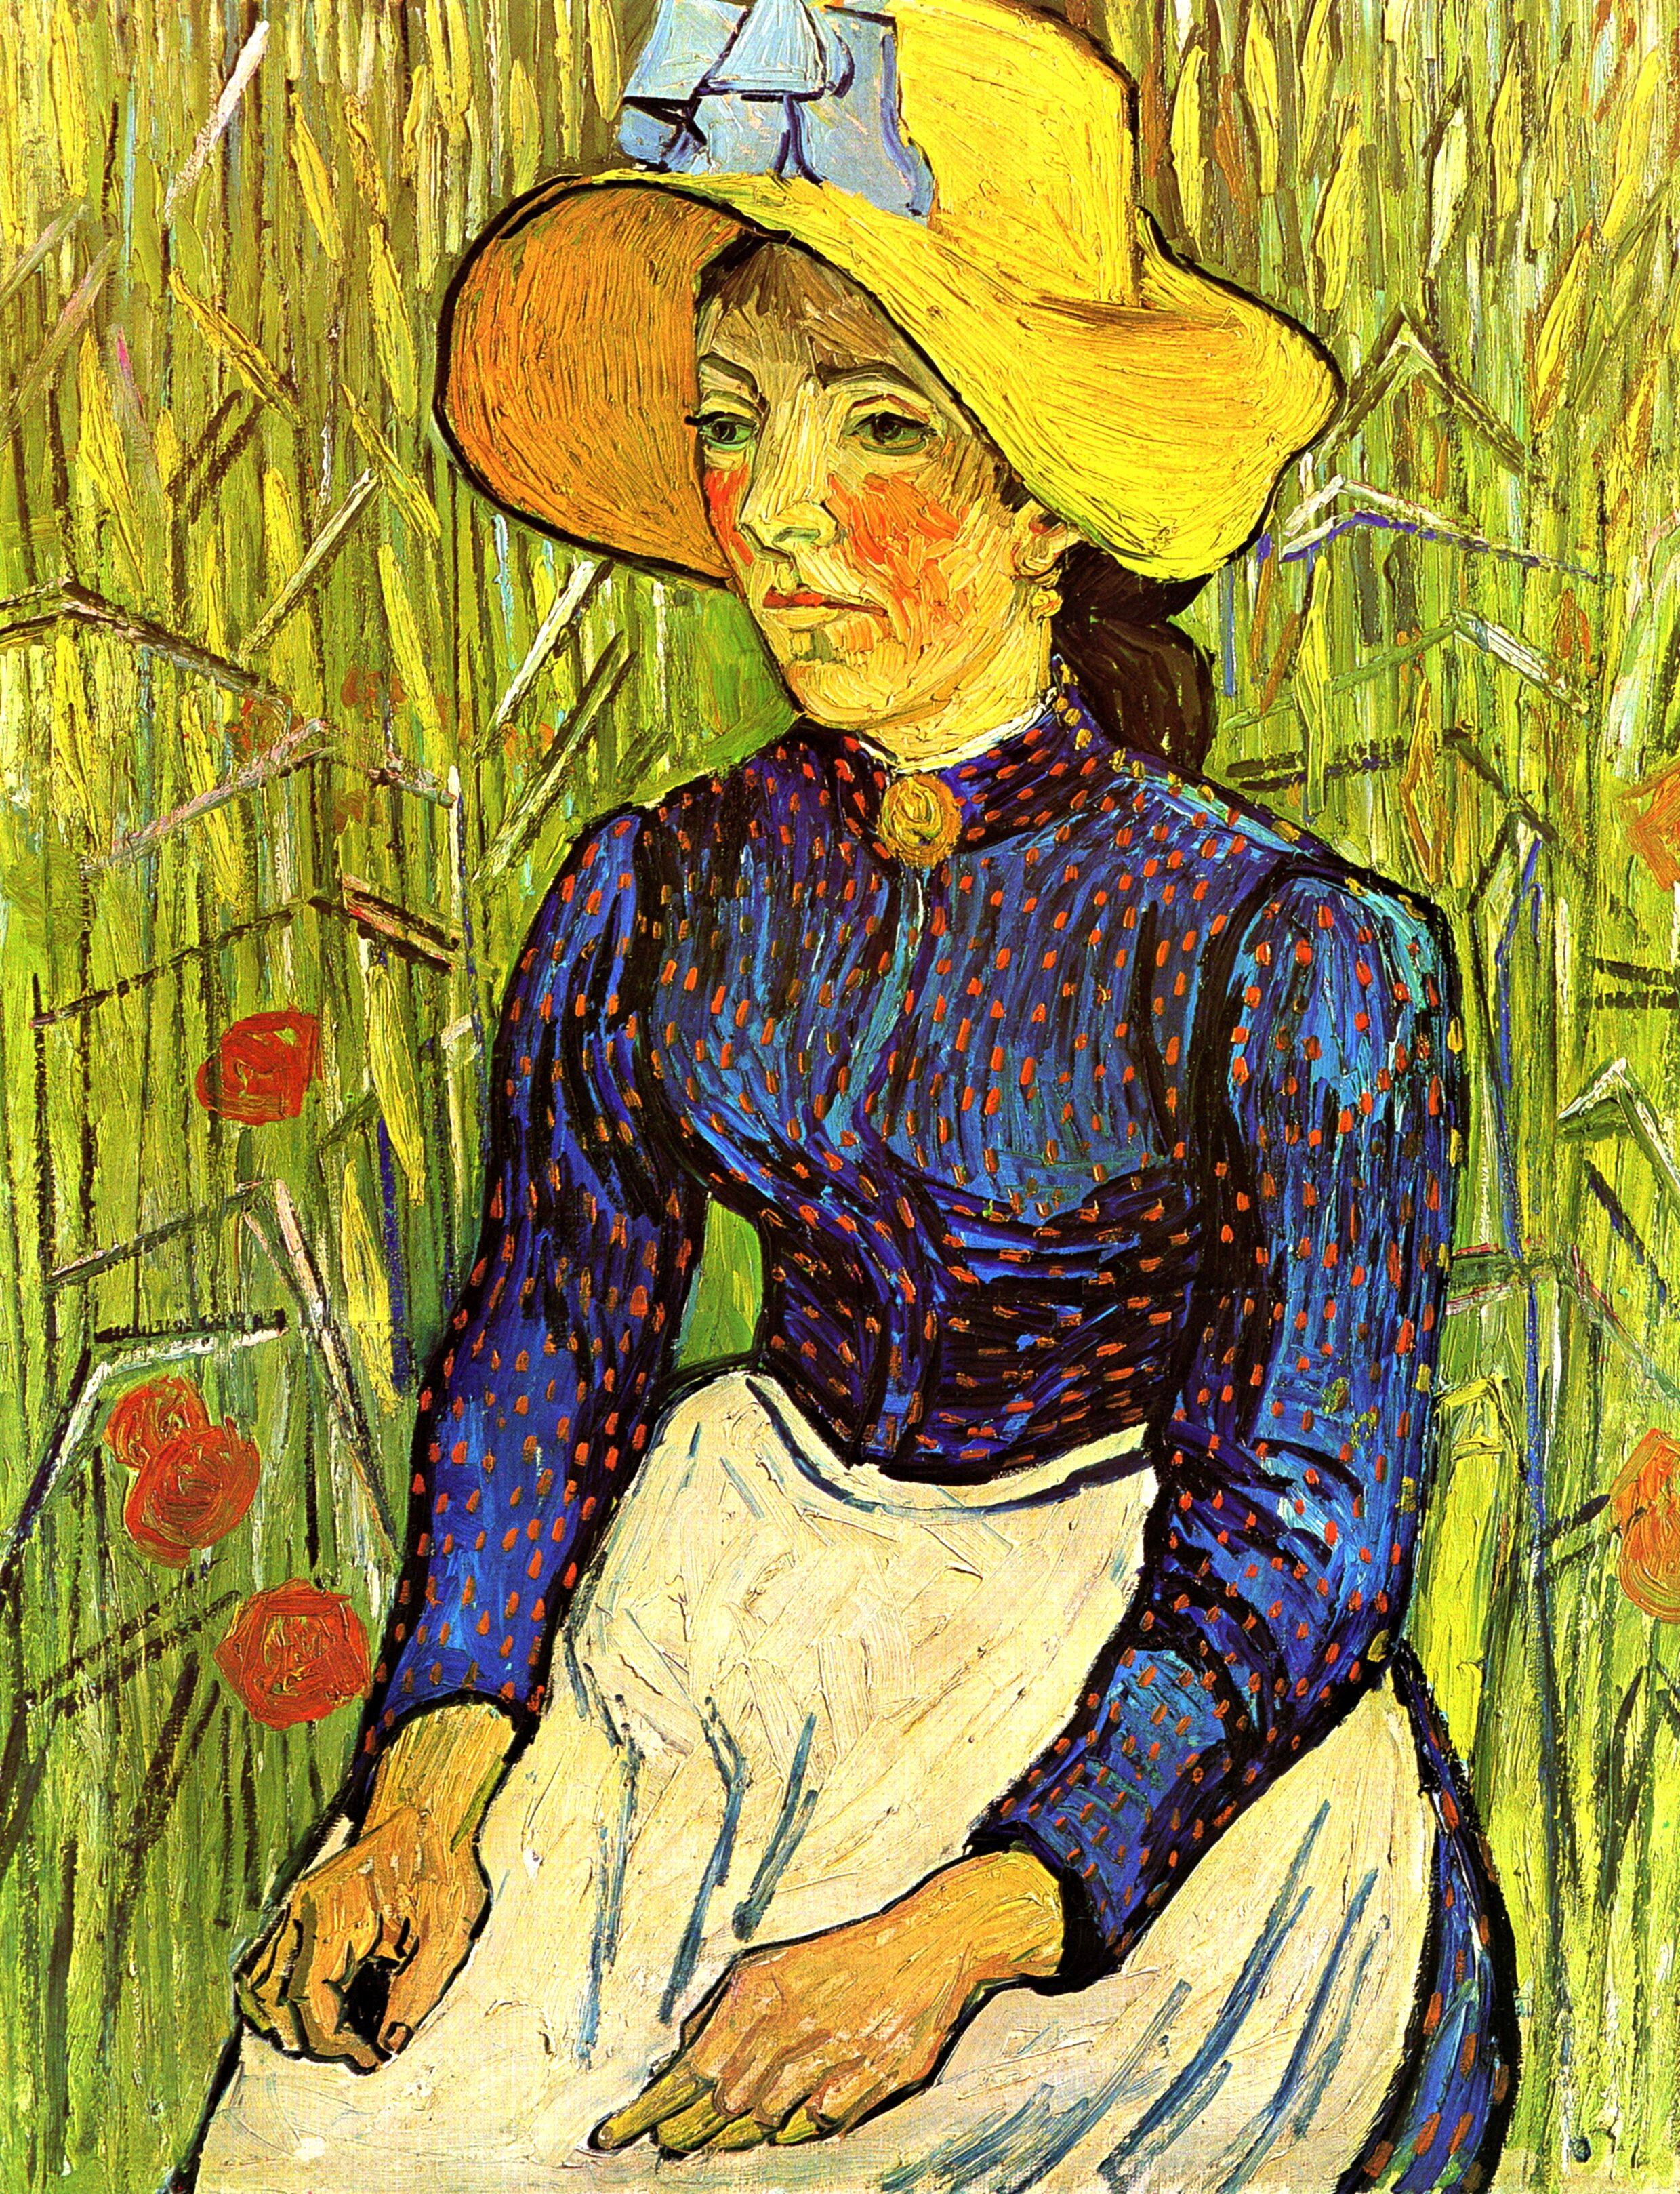 Young Peasant Woman with Straw Hat Sitting in the Wheat 1890